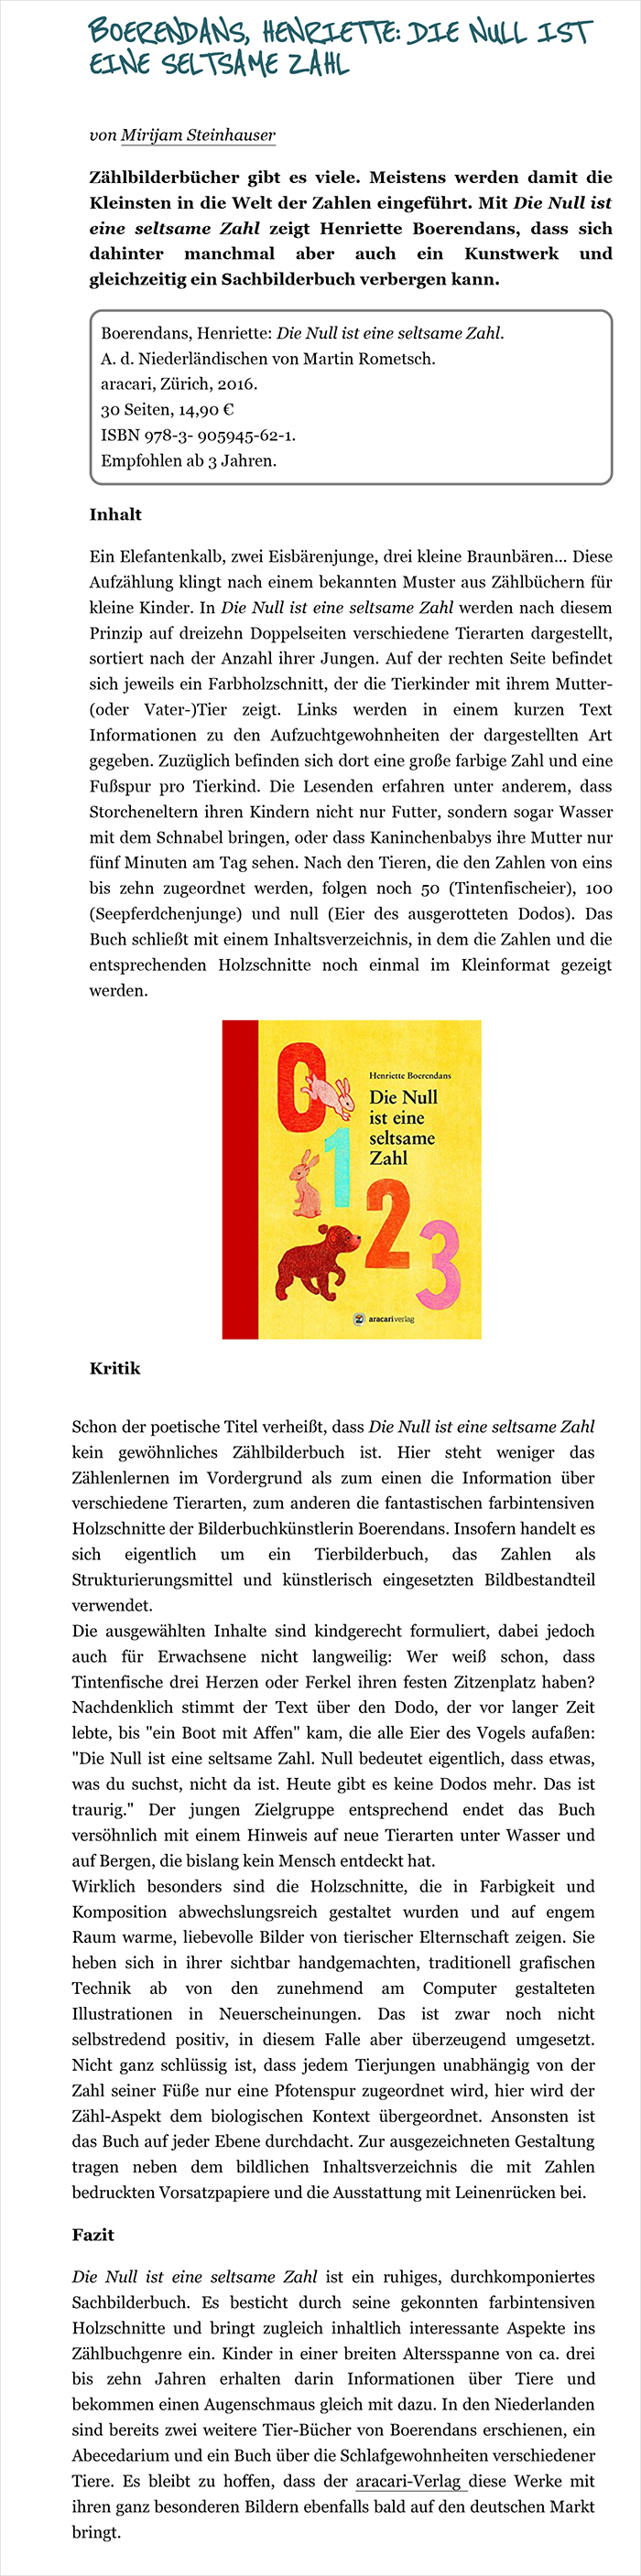 kinderundjugendmedien-1